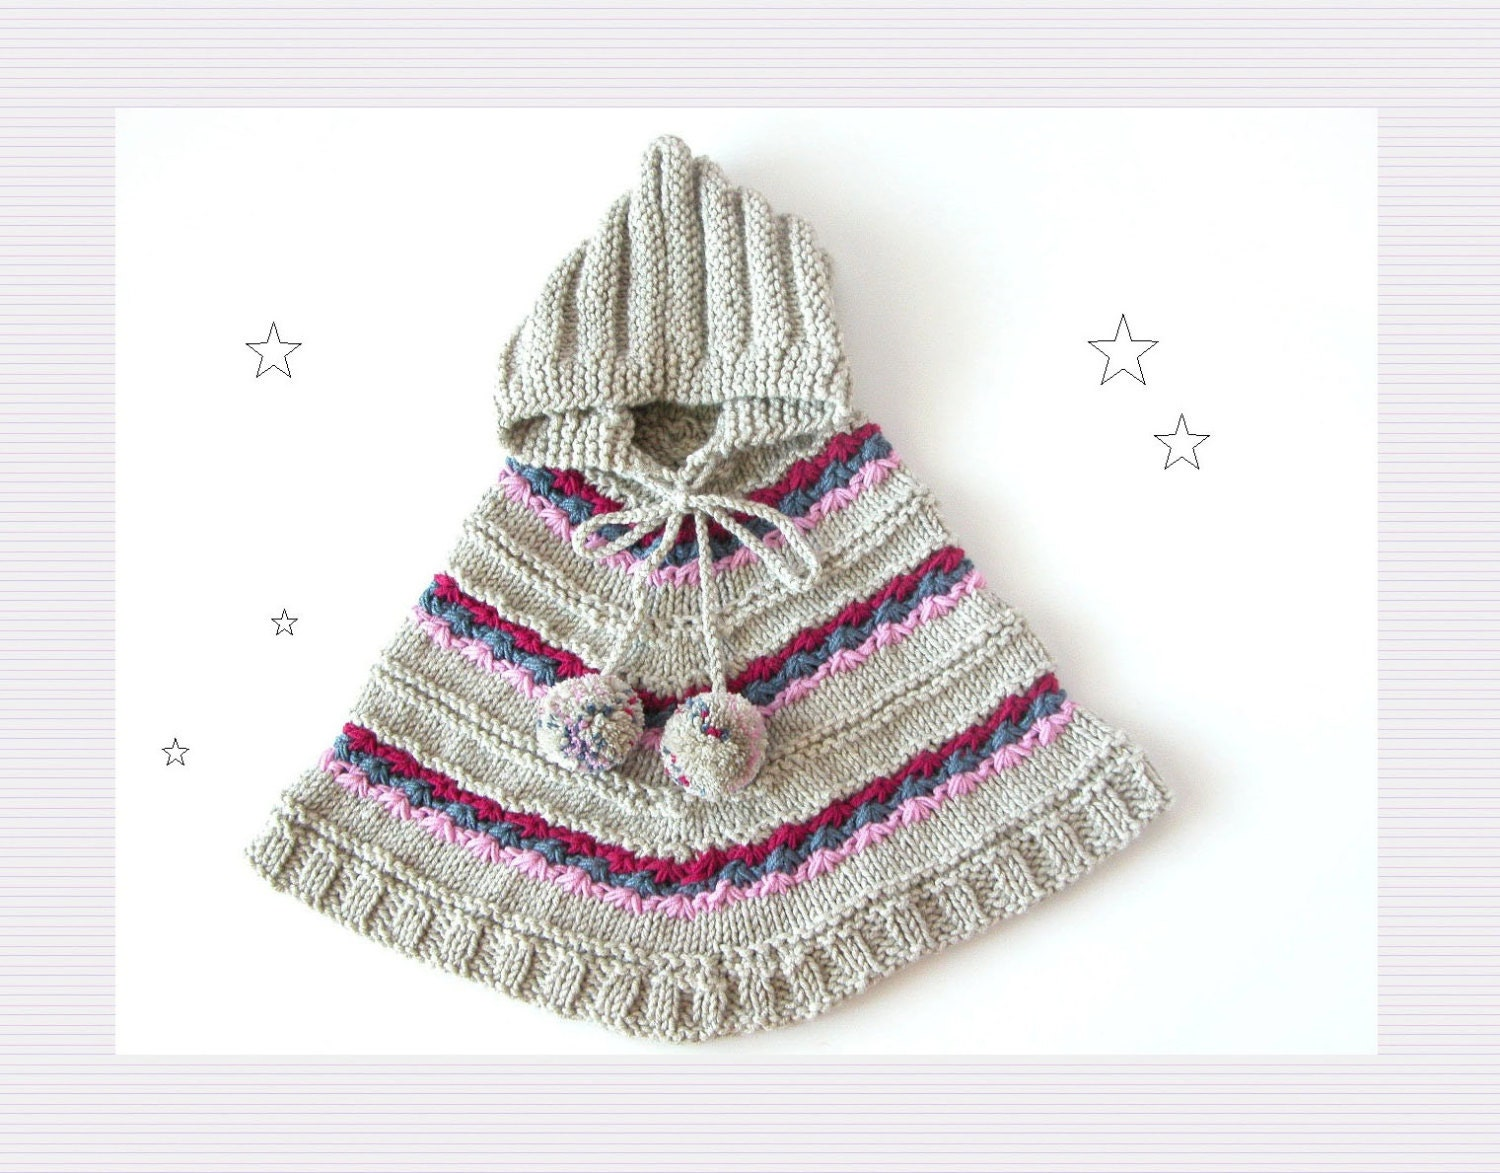 Hooded Toddler Poncho Knitting Pattern : Hand Knit Little Girl Poncho / Toddler Hooded Sweater by ...